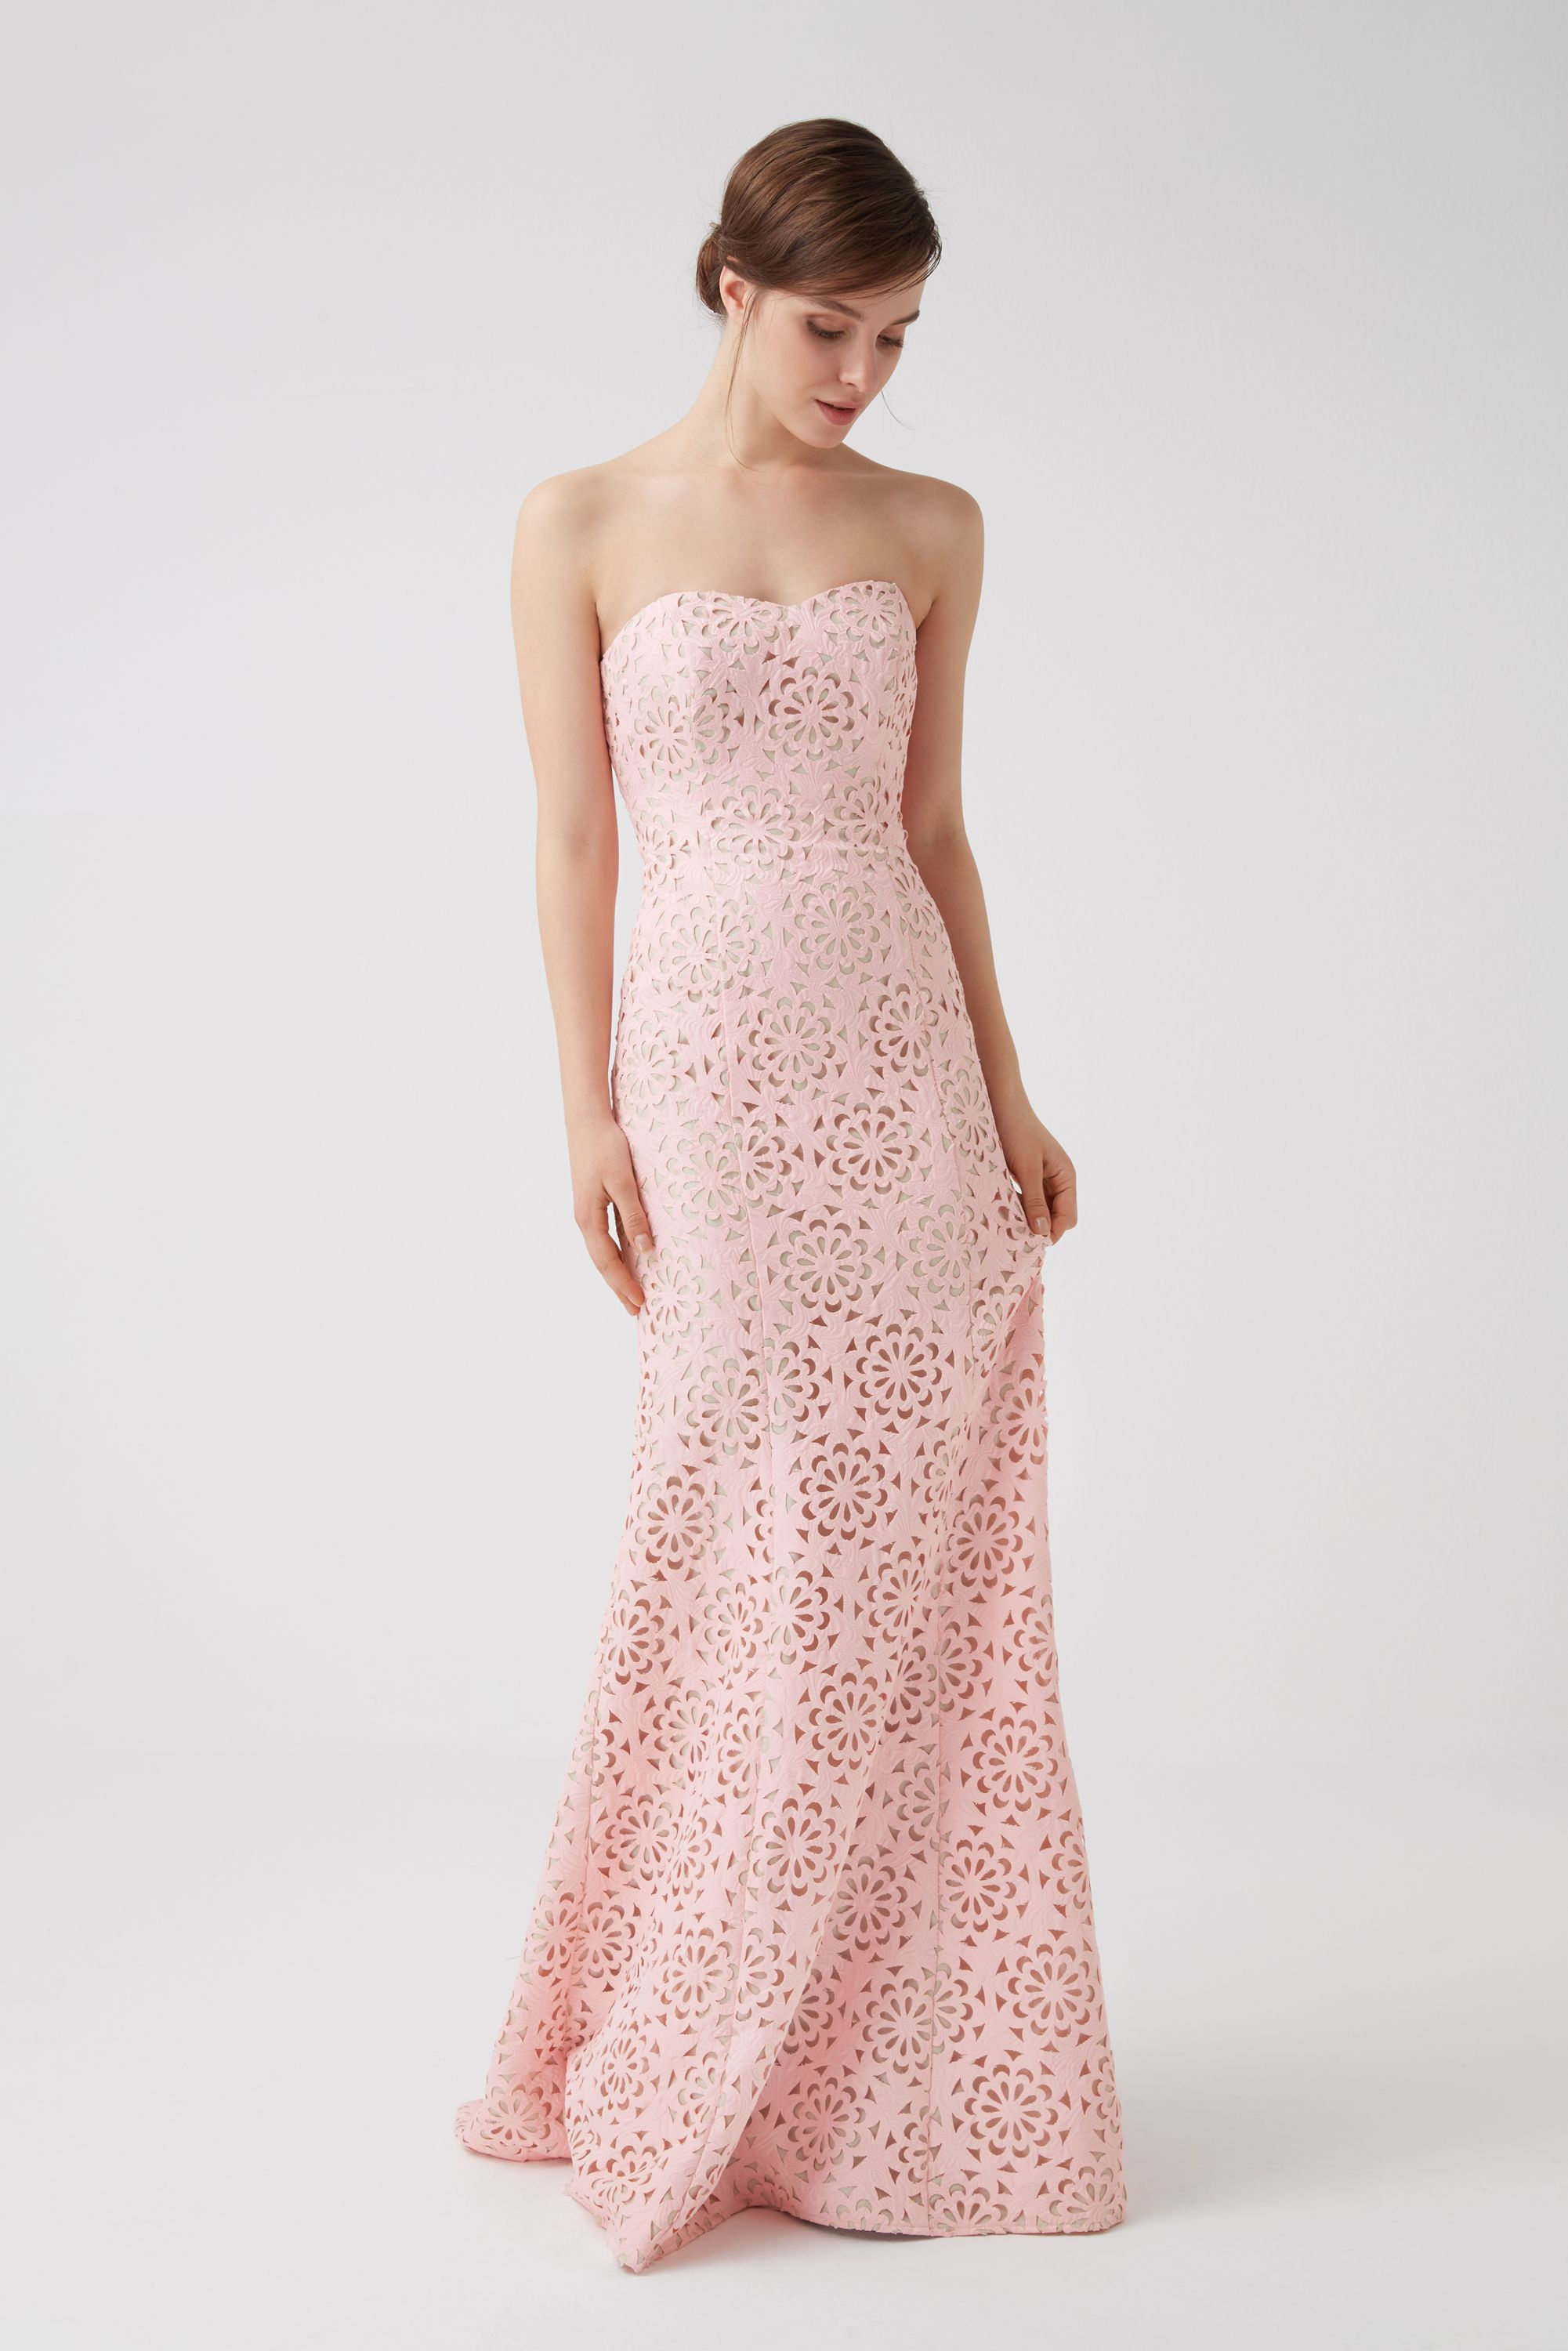 Oleg Cassini 2015 Abiye Koleksiyonu | Oleg Cassini Evening Dresses ...